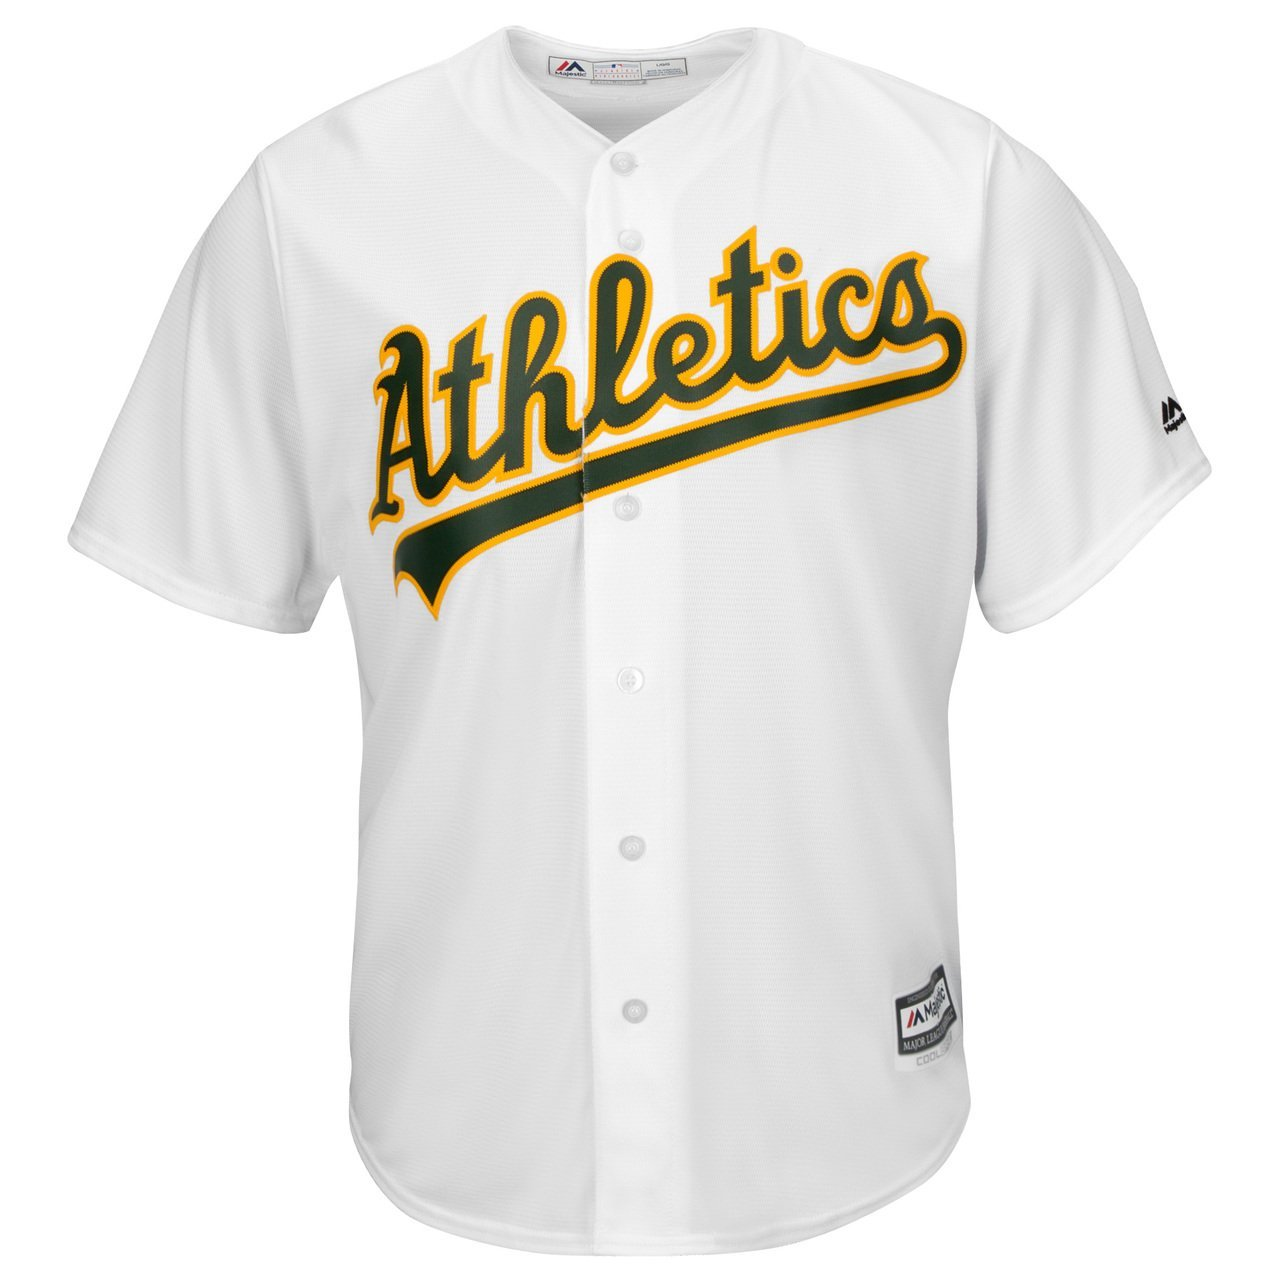 amp; Mlb White Outdoors Cool Oakland Amazon Majestic Athletics com Women's 2015 Sports Home Base Jersey